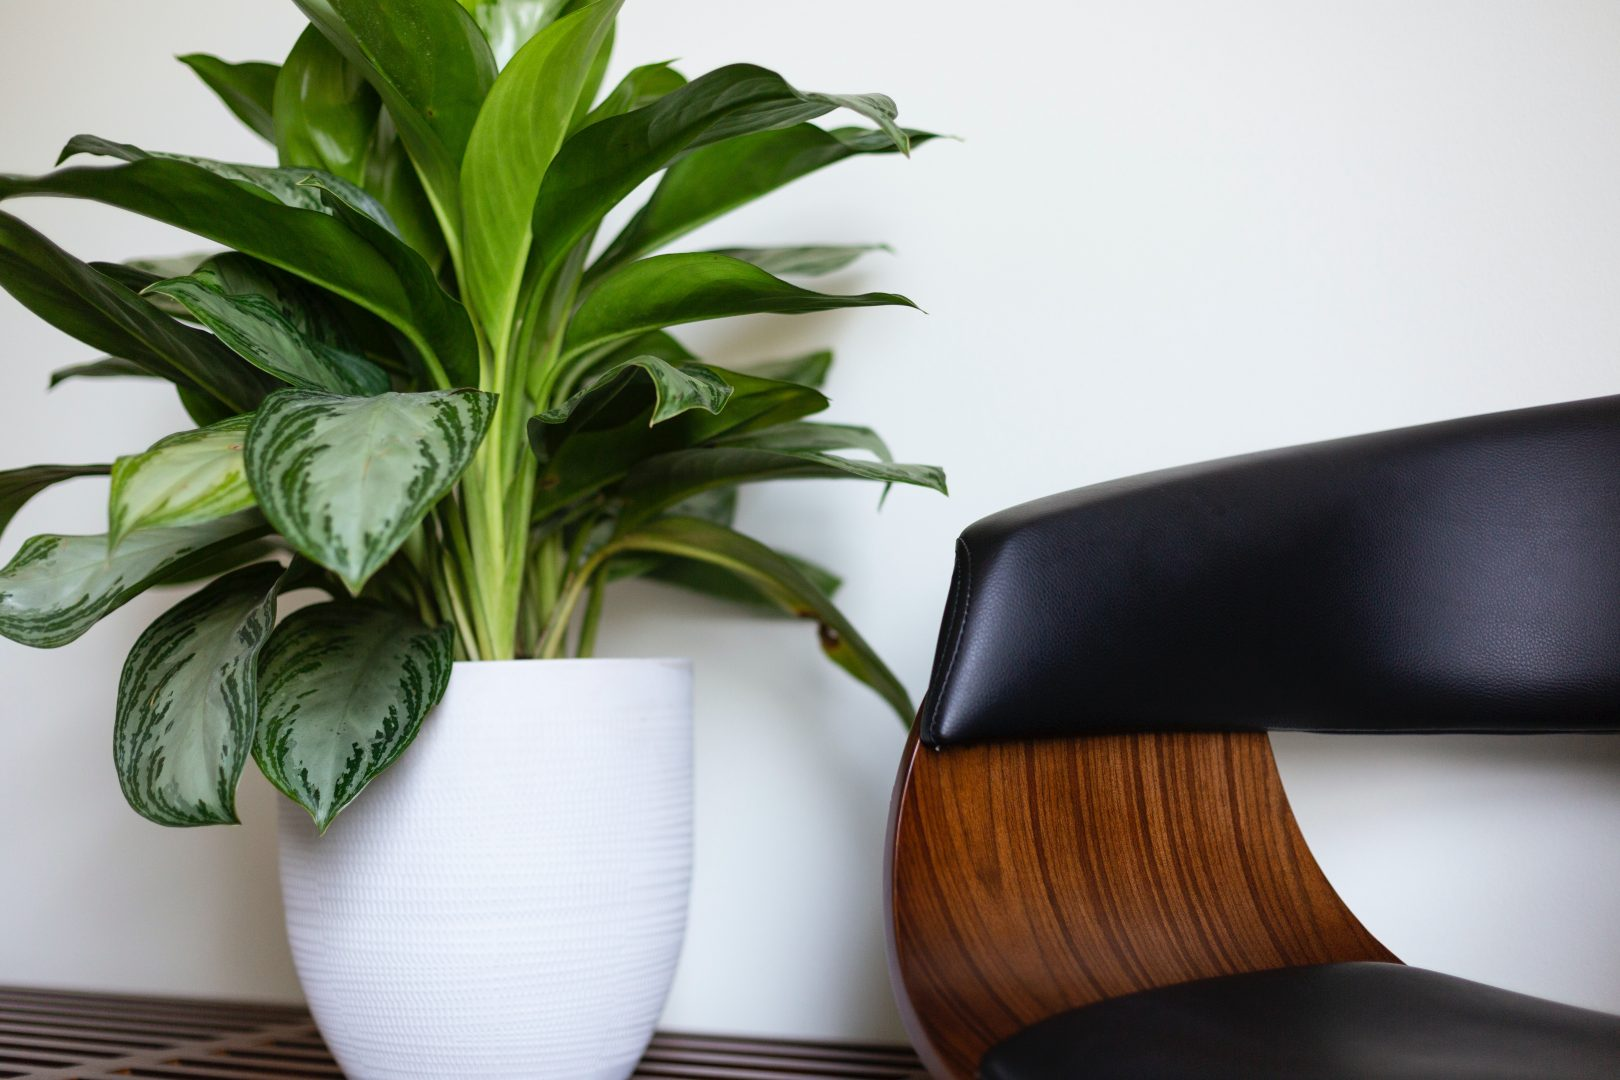 potted dumb cane plant near furniture